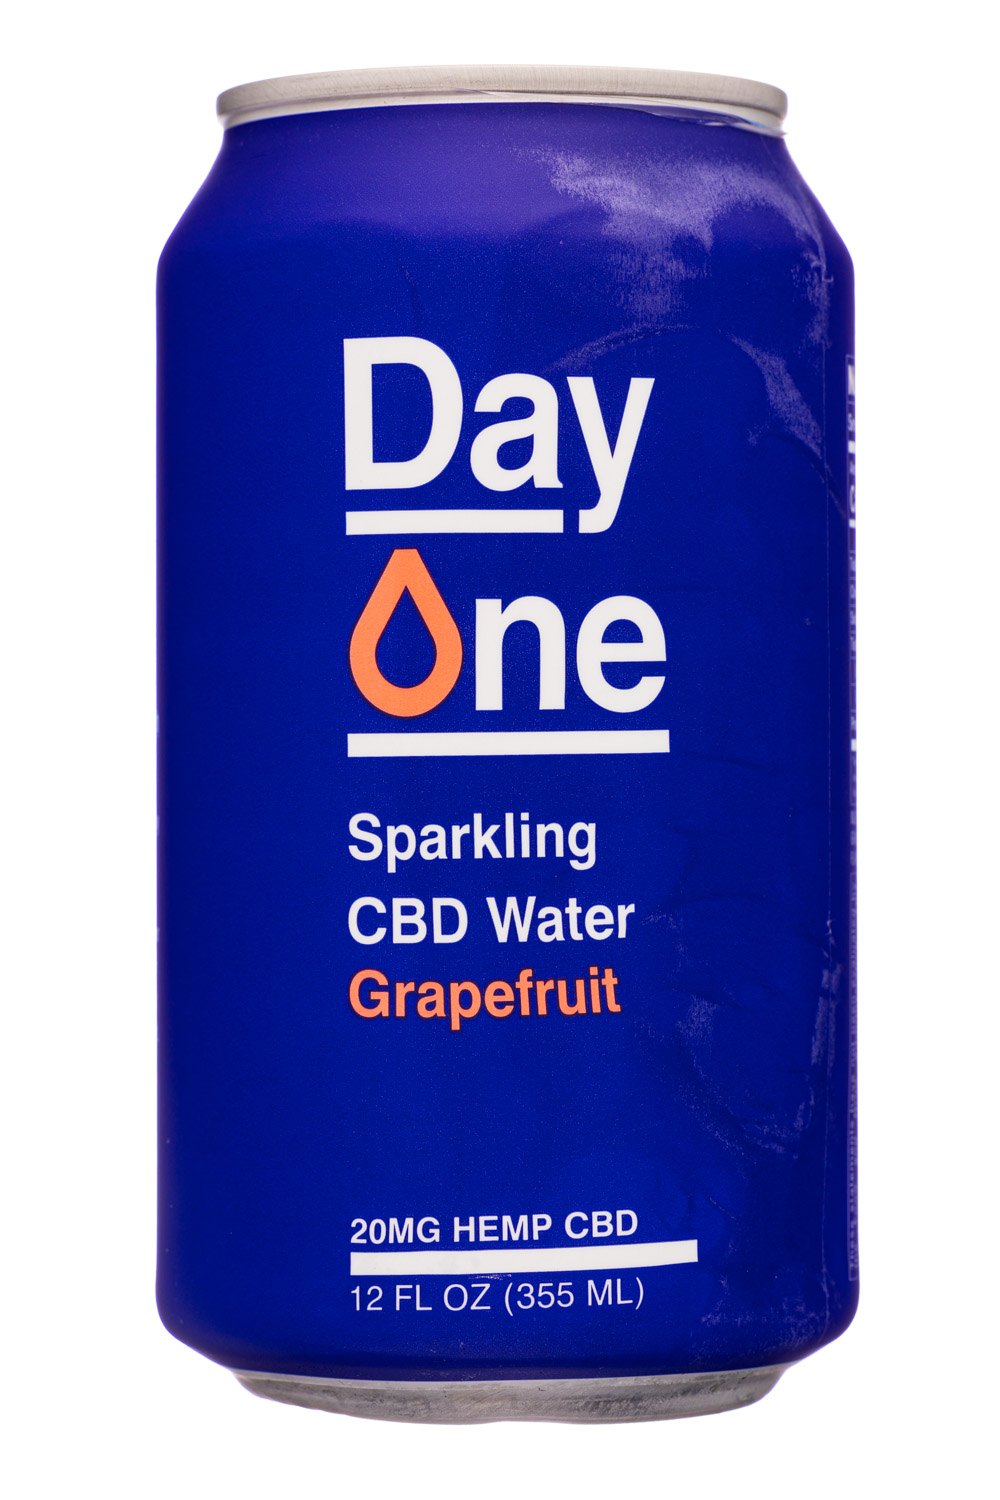 Sparkling CBD Water - Grapefruit